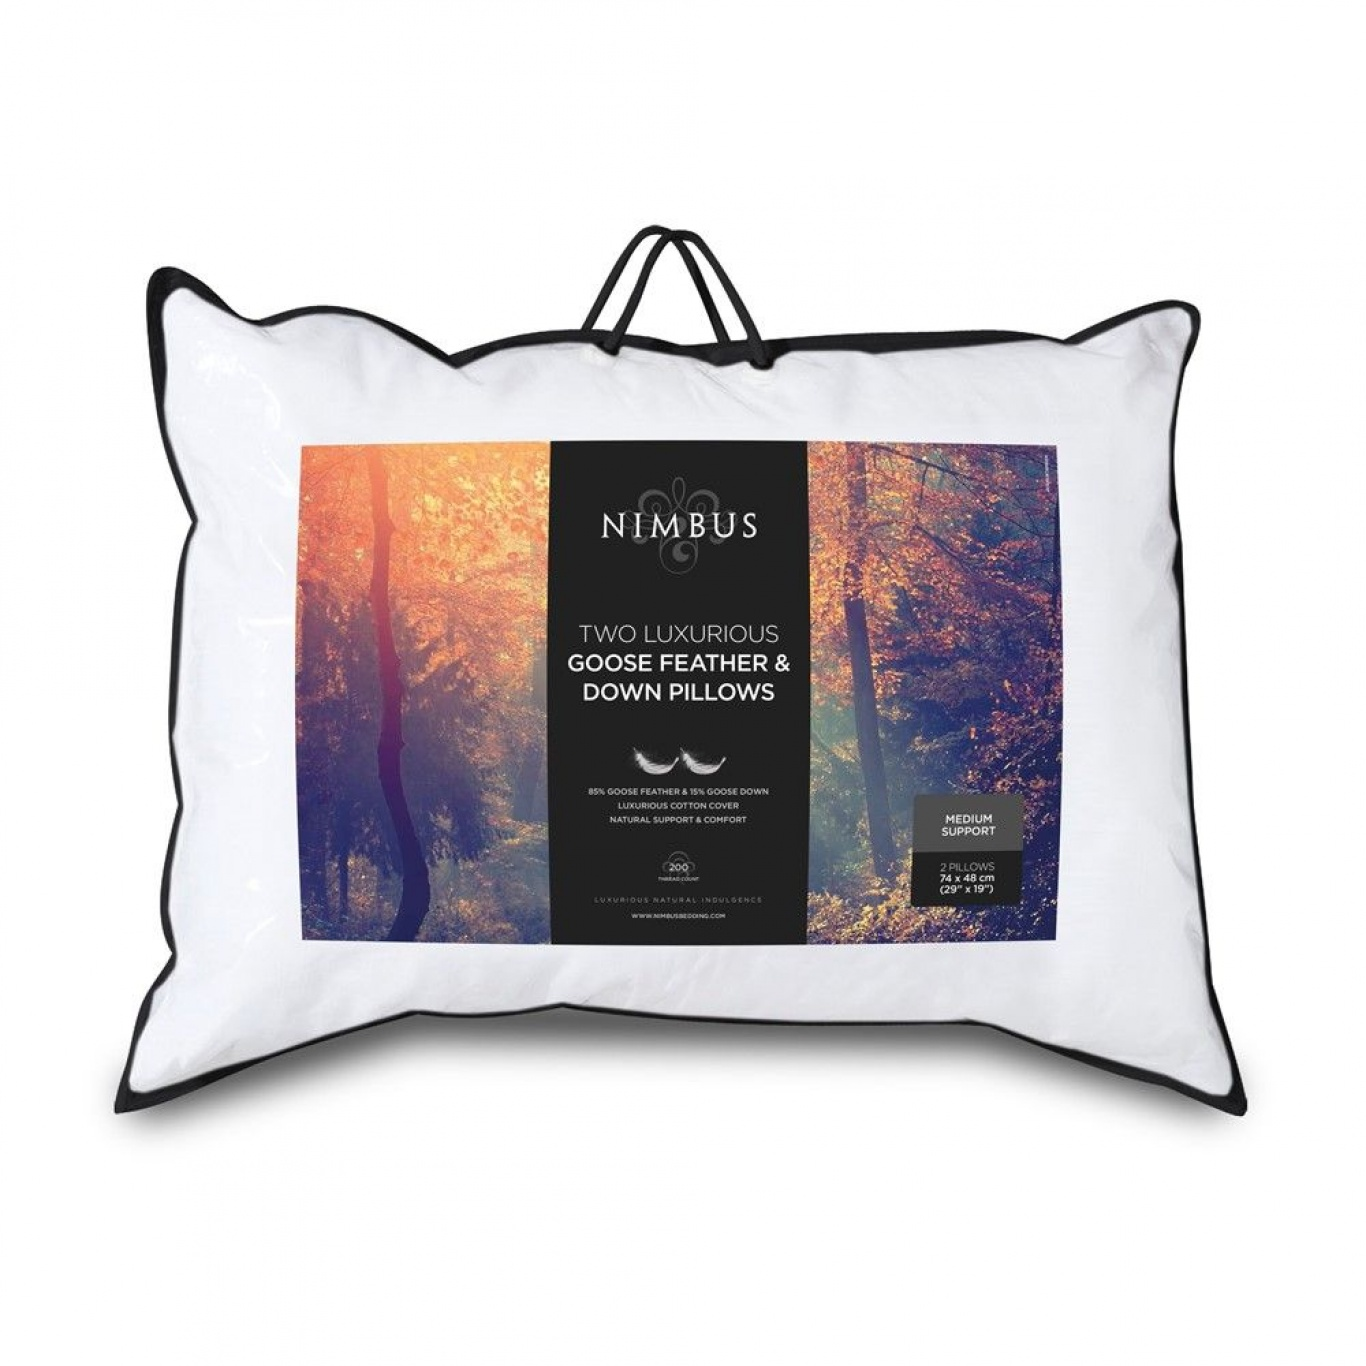 Image of Nimbus Goose Feather and Down Pillow Pair